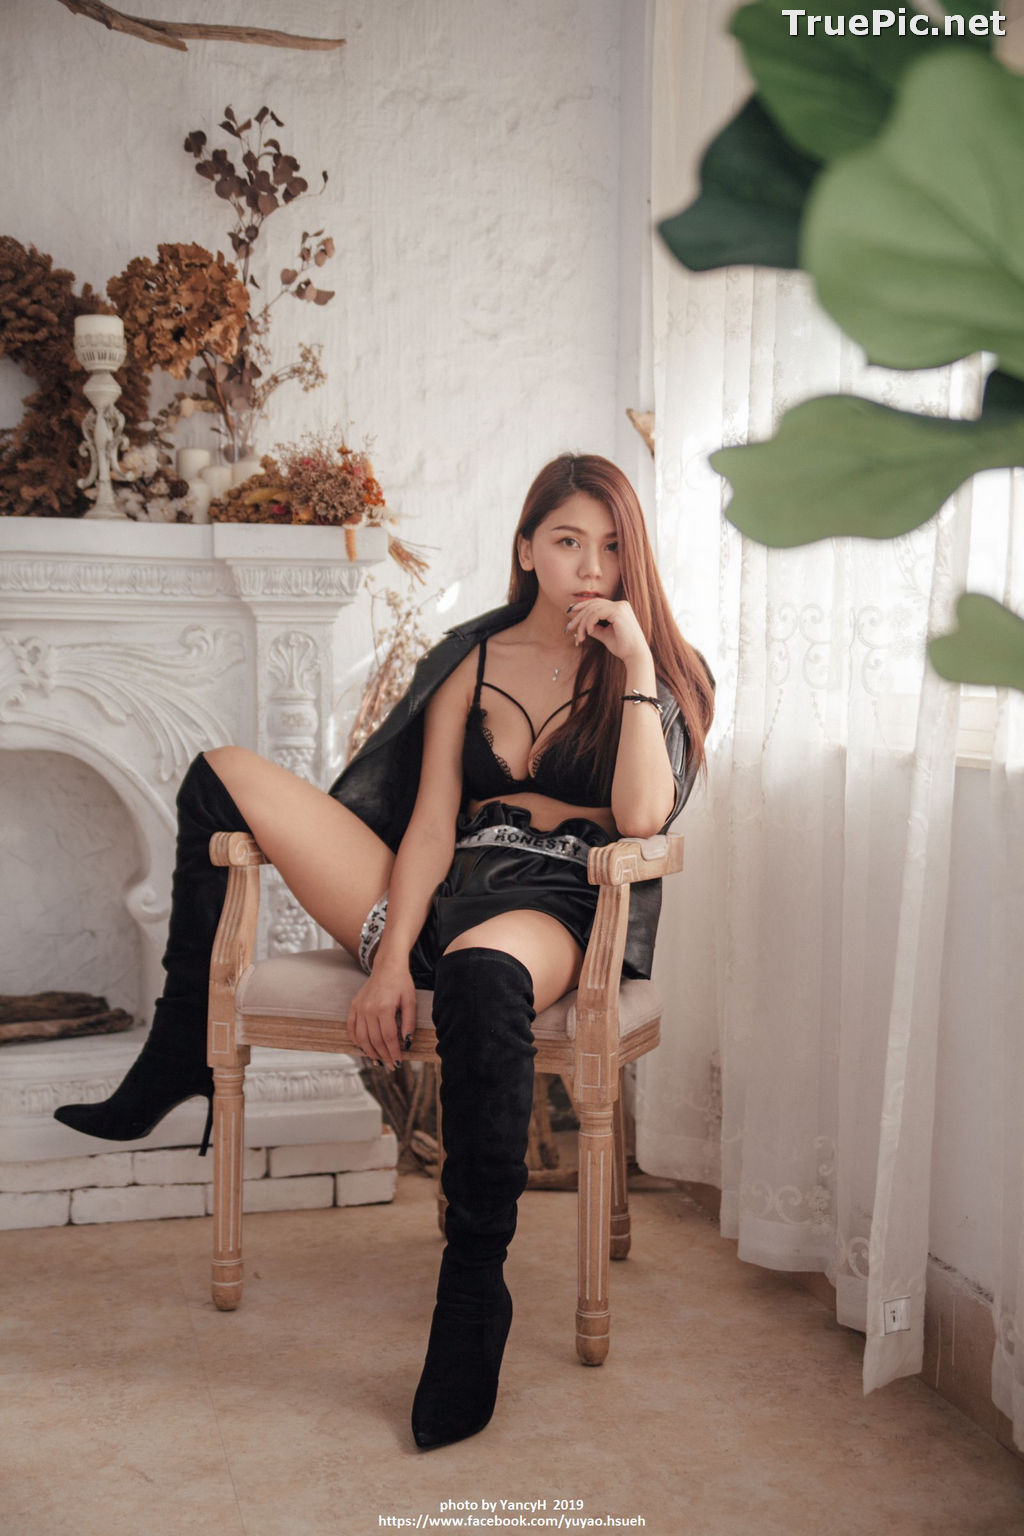 Image Taiwanese Model - Lyla - What Do You Think About My Lingerie - TruePic.net - Picture-7